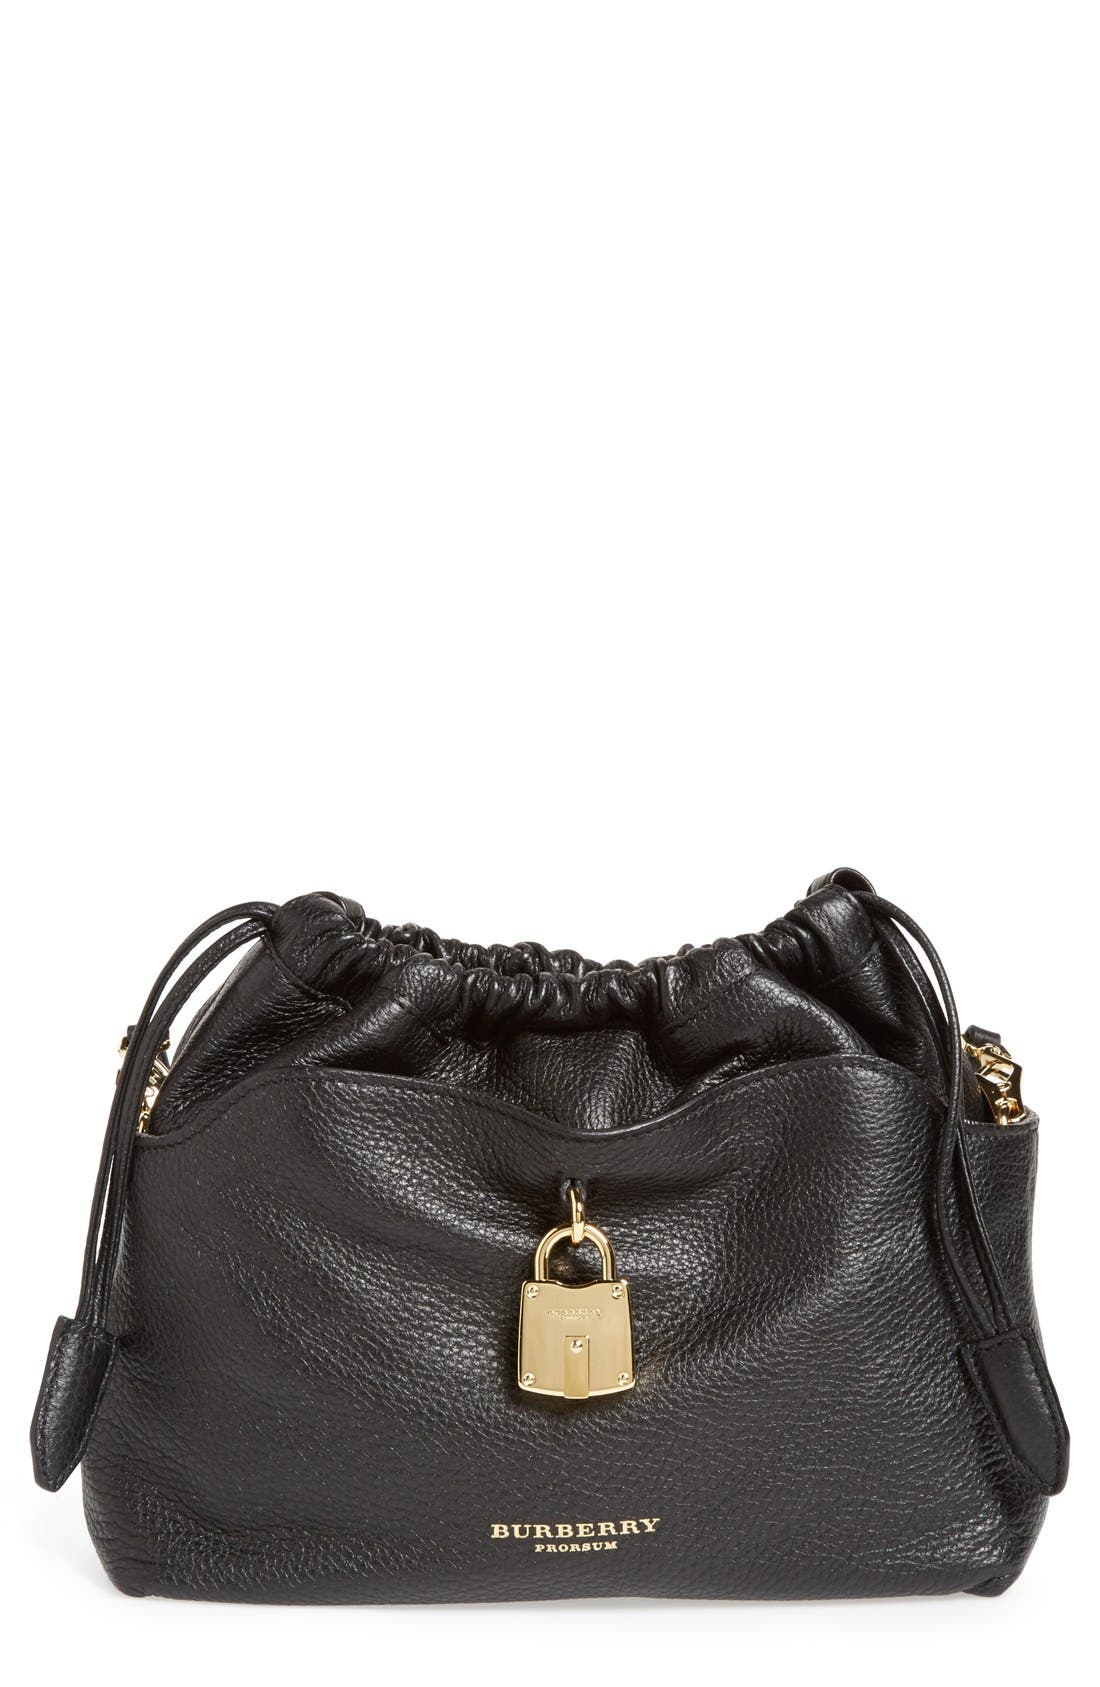 Main Image - Burberry 'Little Crush' Crossbody Bag